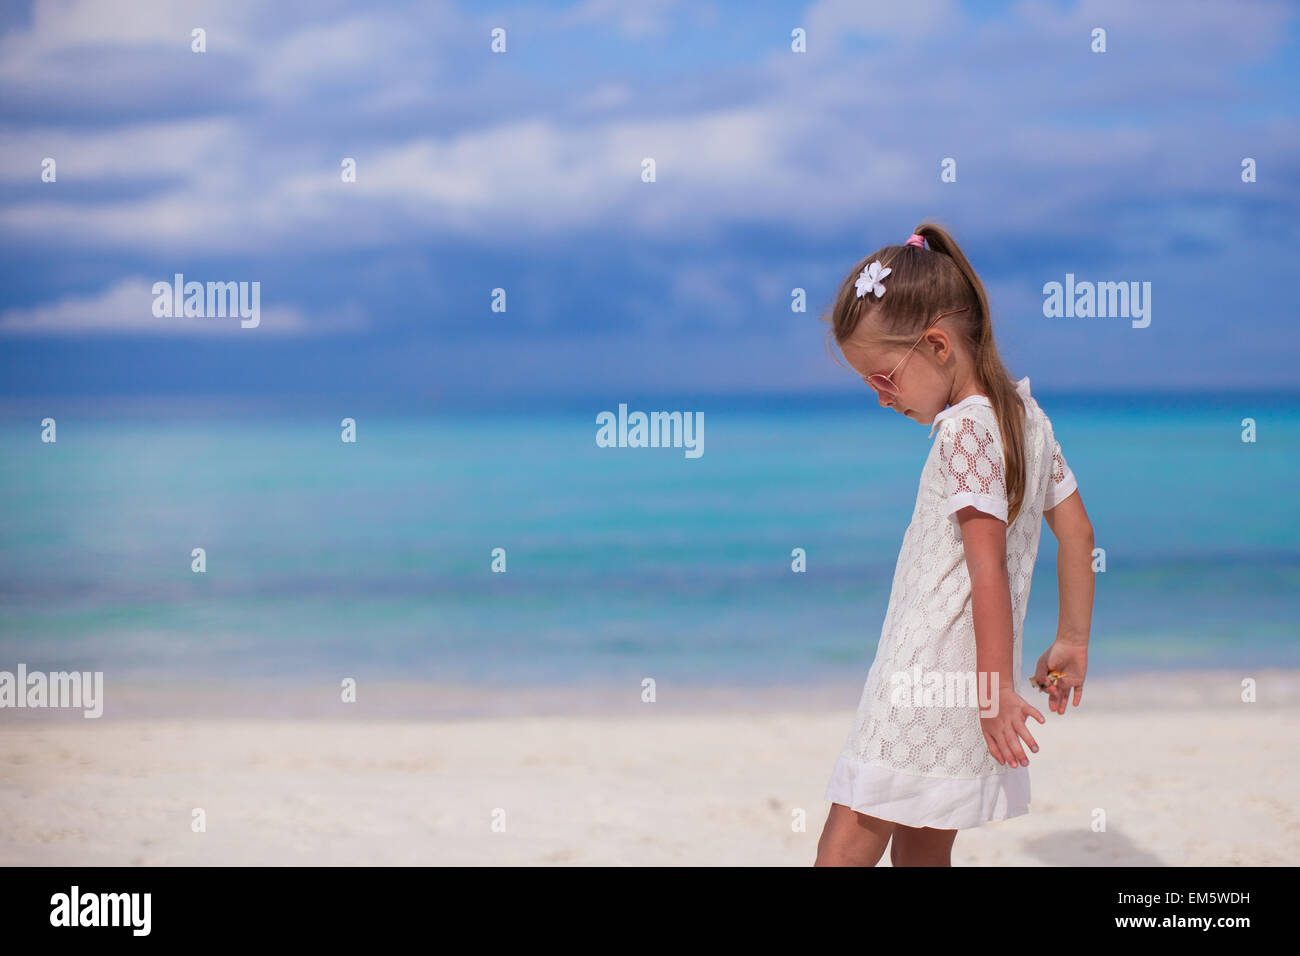 bbec130b4d3 Cute little girl walking on tropical beach vacation Stock Photo ...